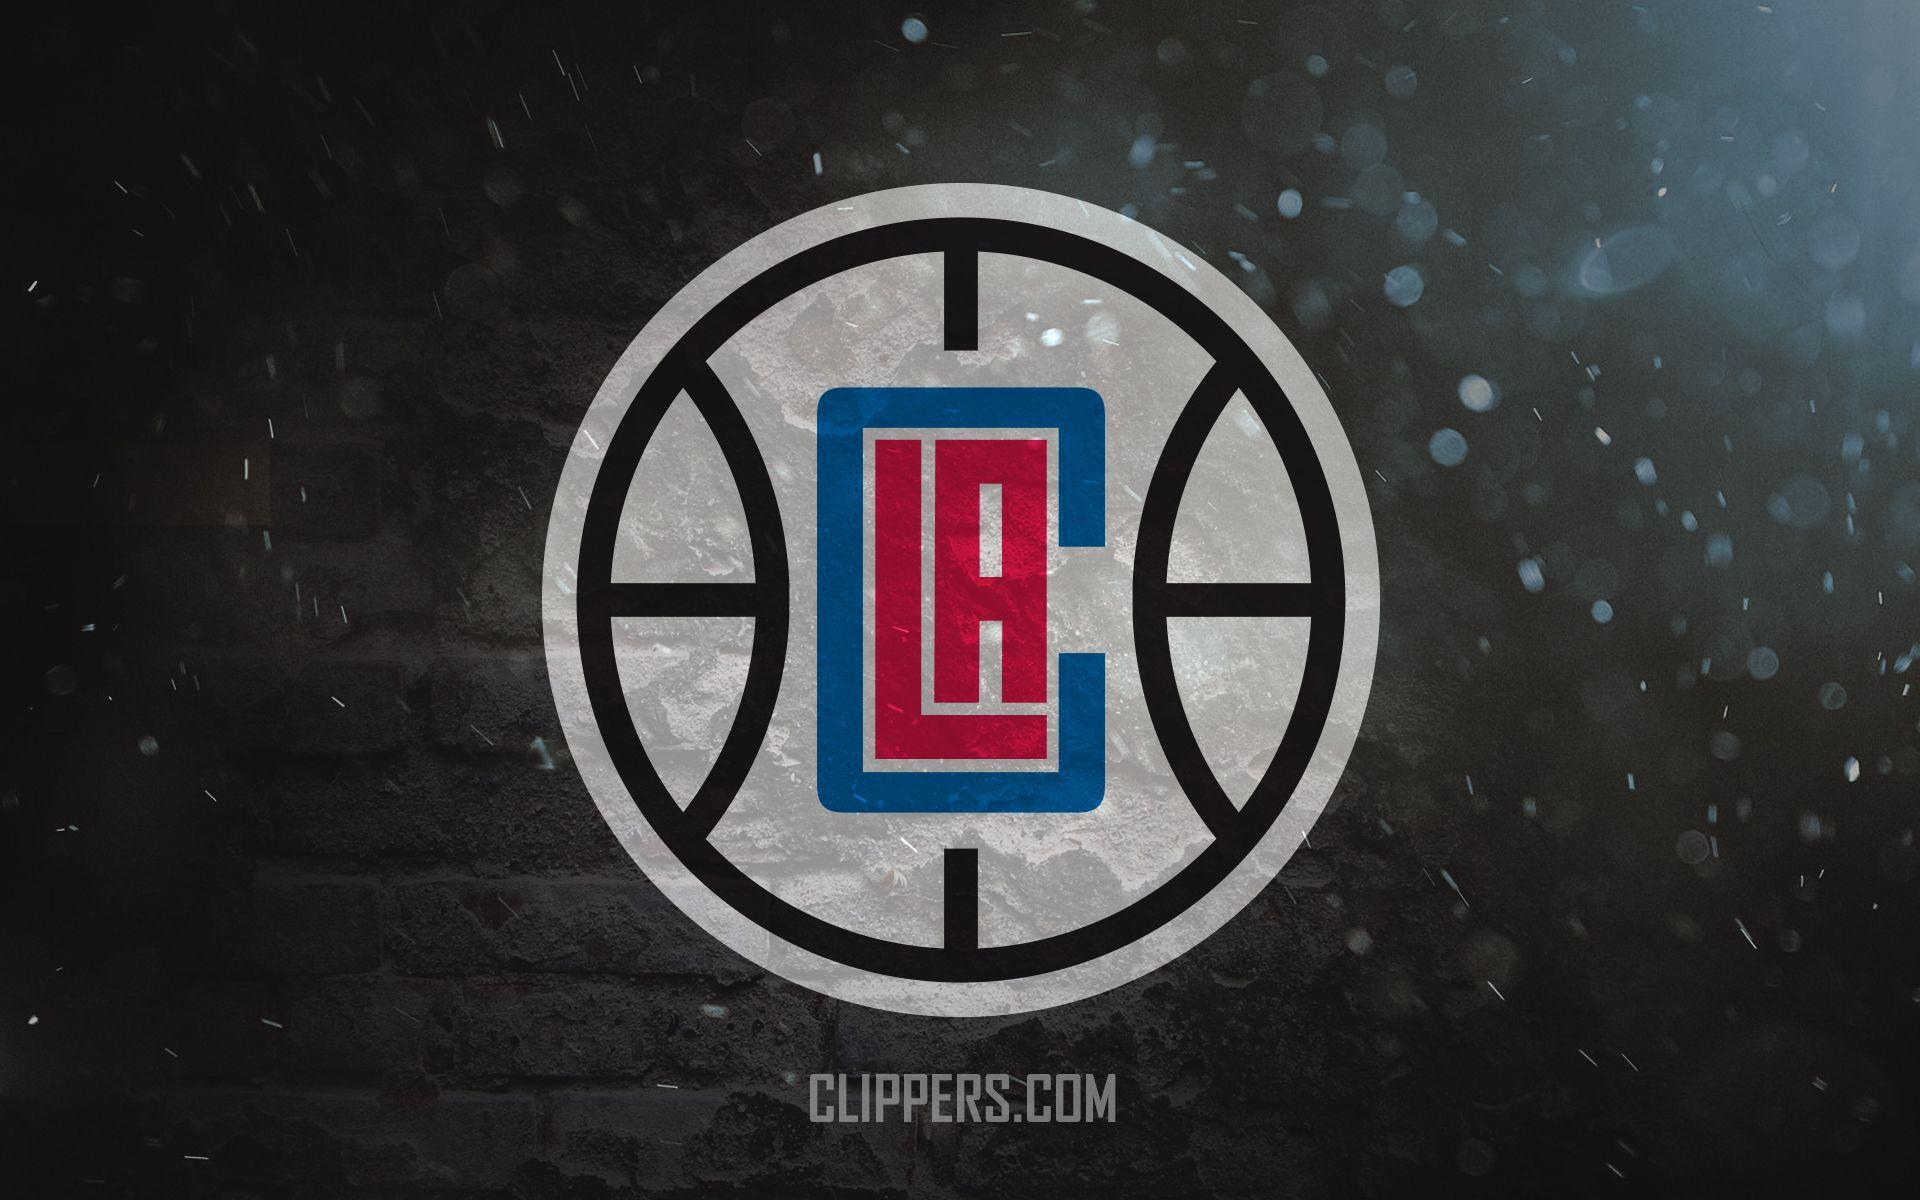 Clippers Wallpaper Collection (38+)